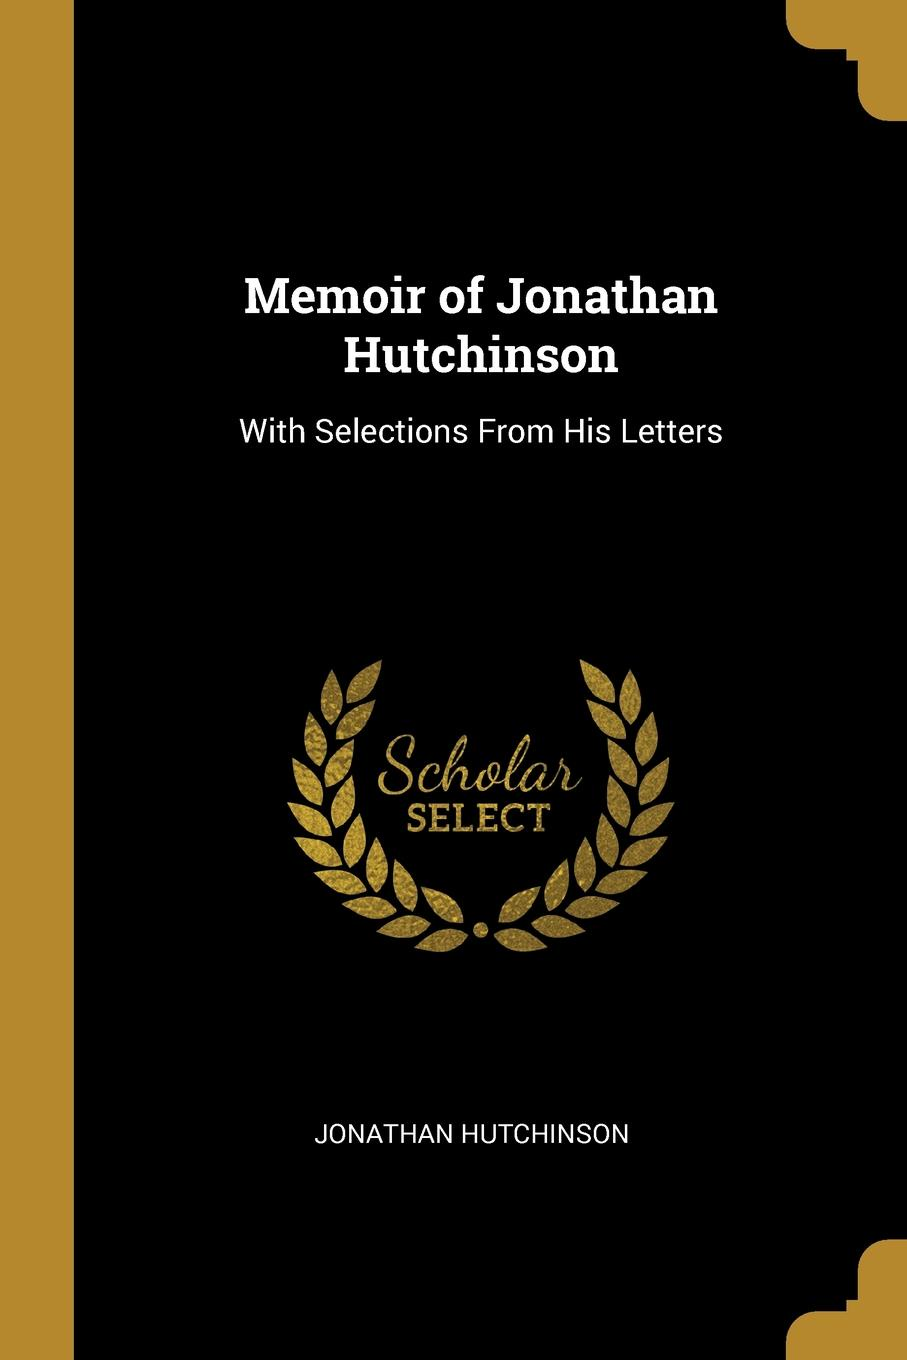 Jonathan Hutchinson Memoir of Hutchinson. With Selections From His Letters